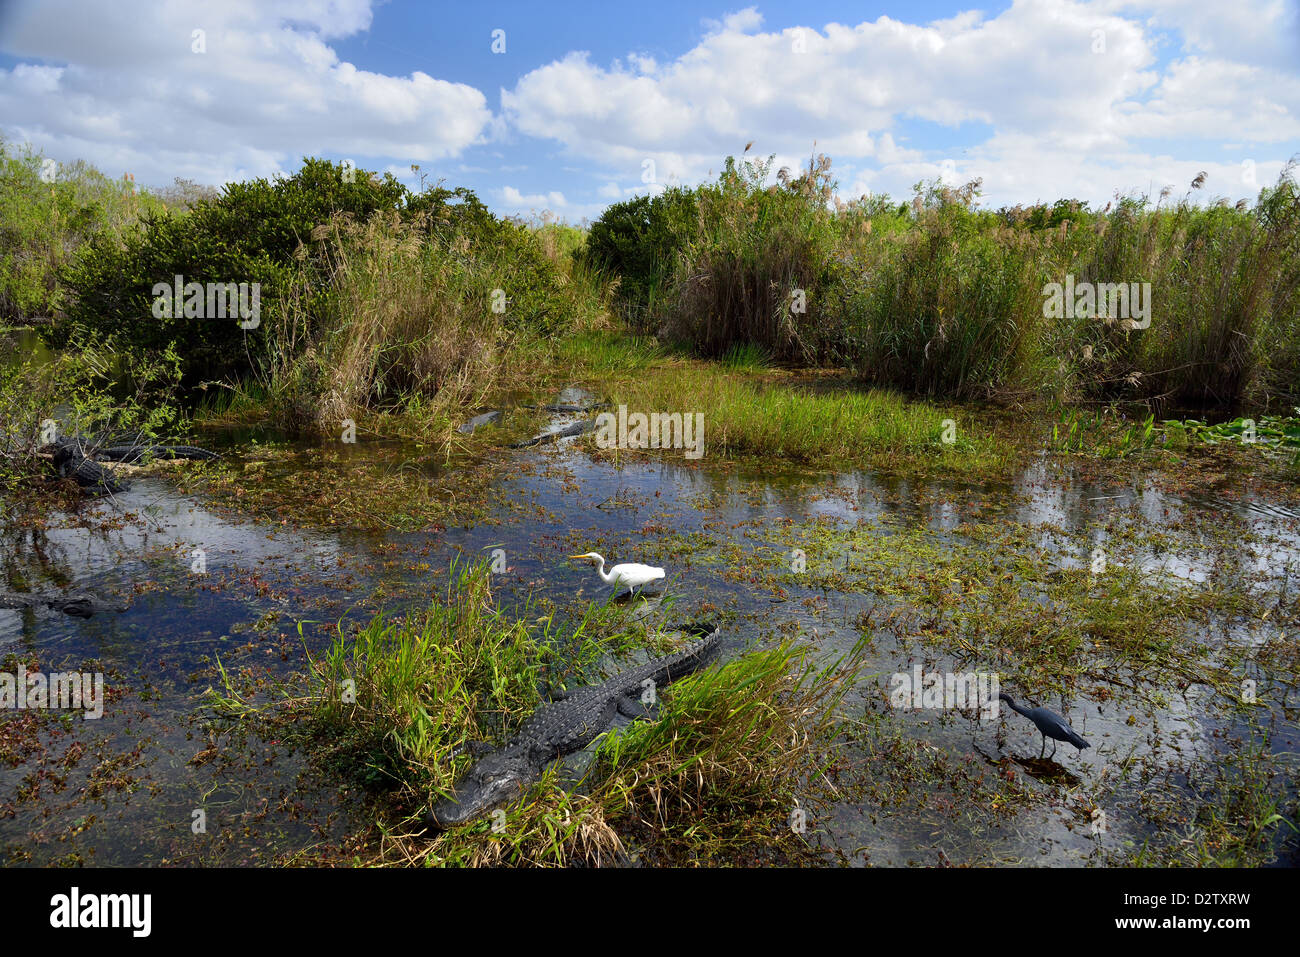 Snapshot of the eco-system, alligators and birds live side by side in the swamp. The Everglades National Park, Florida, - Stock Image